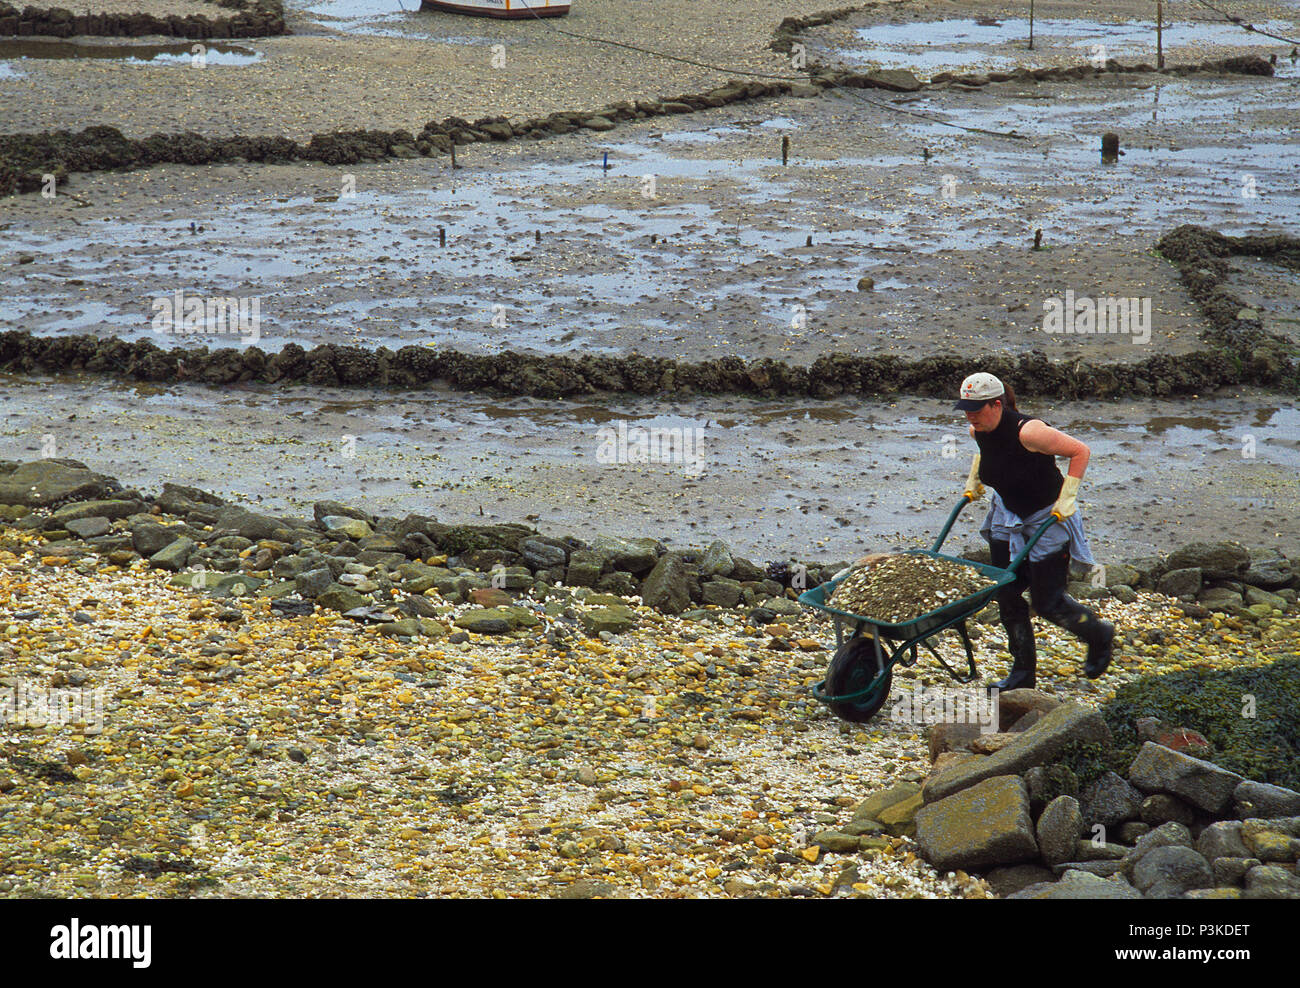 Shellfish catcher working in the estuary during low tide. Carril, Pontevedra province, Galicia, Spain. - Stock Image